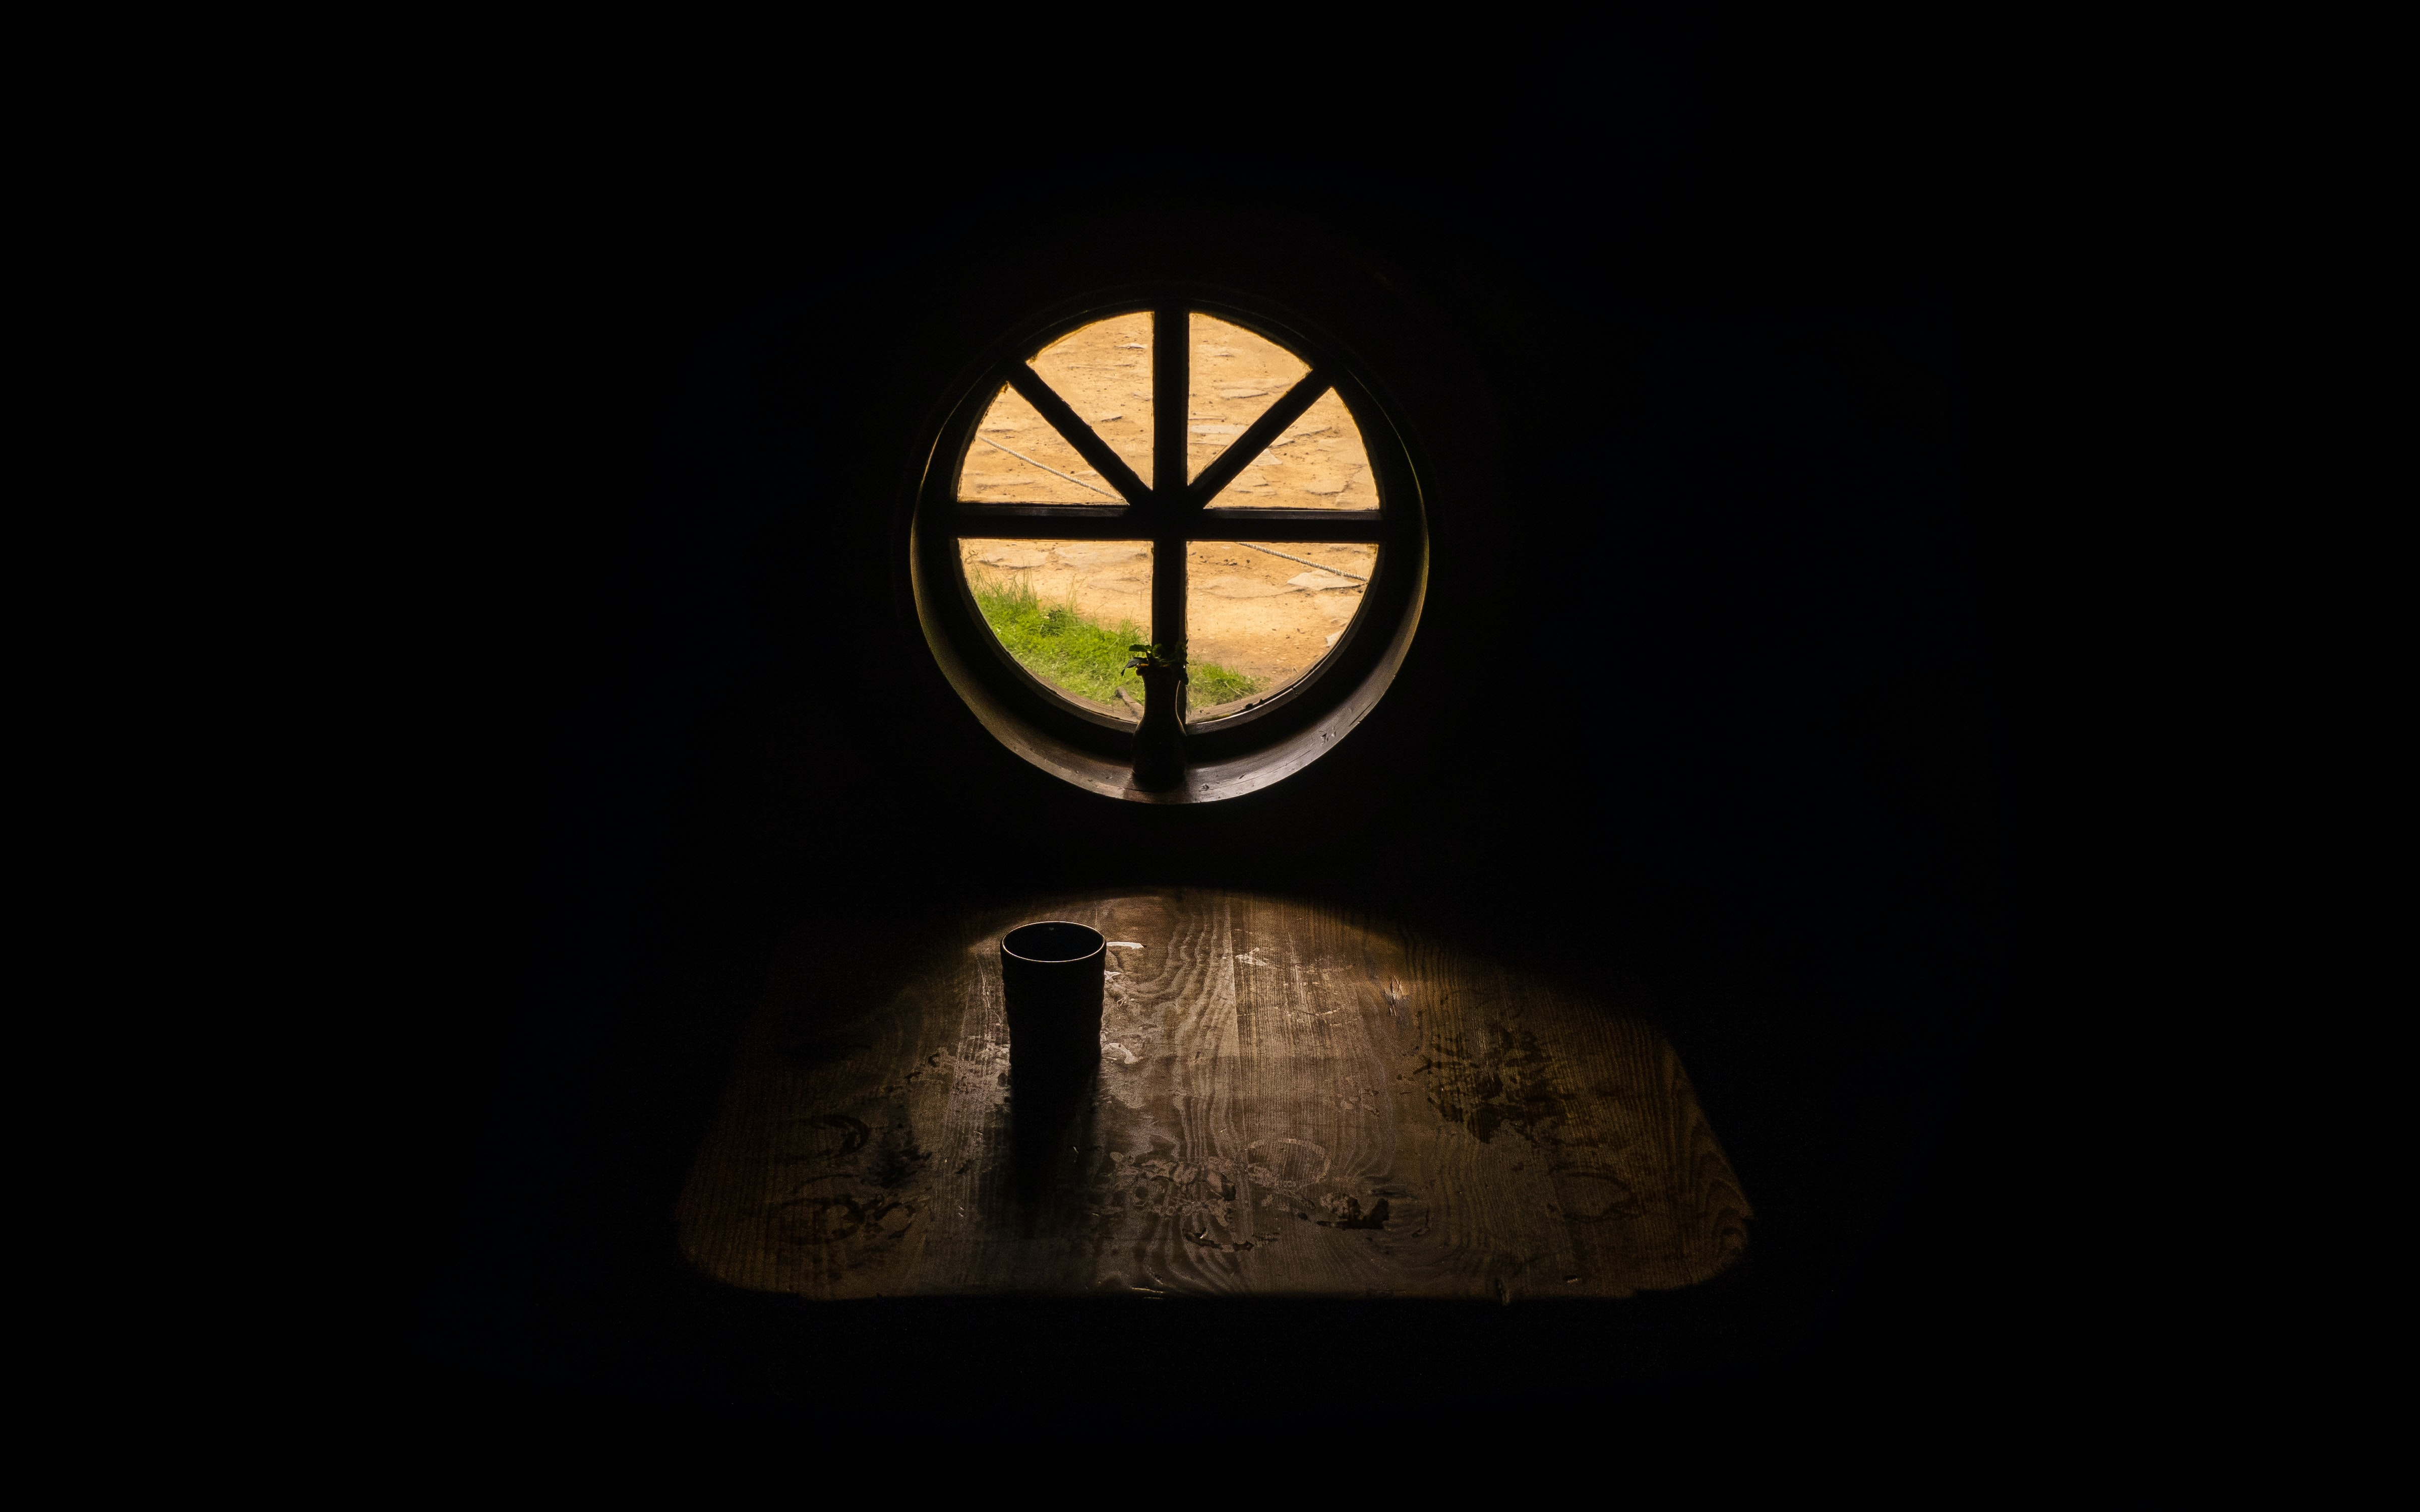 Small round window from inside dark room with wooden table and cup, at The Green Dragon Inn